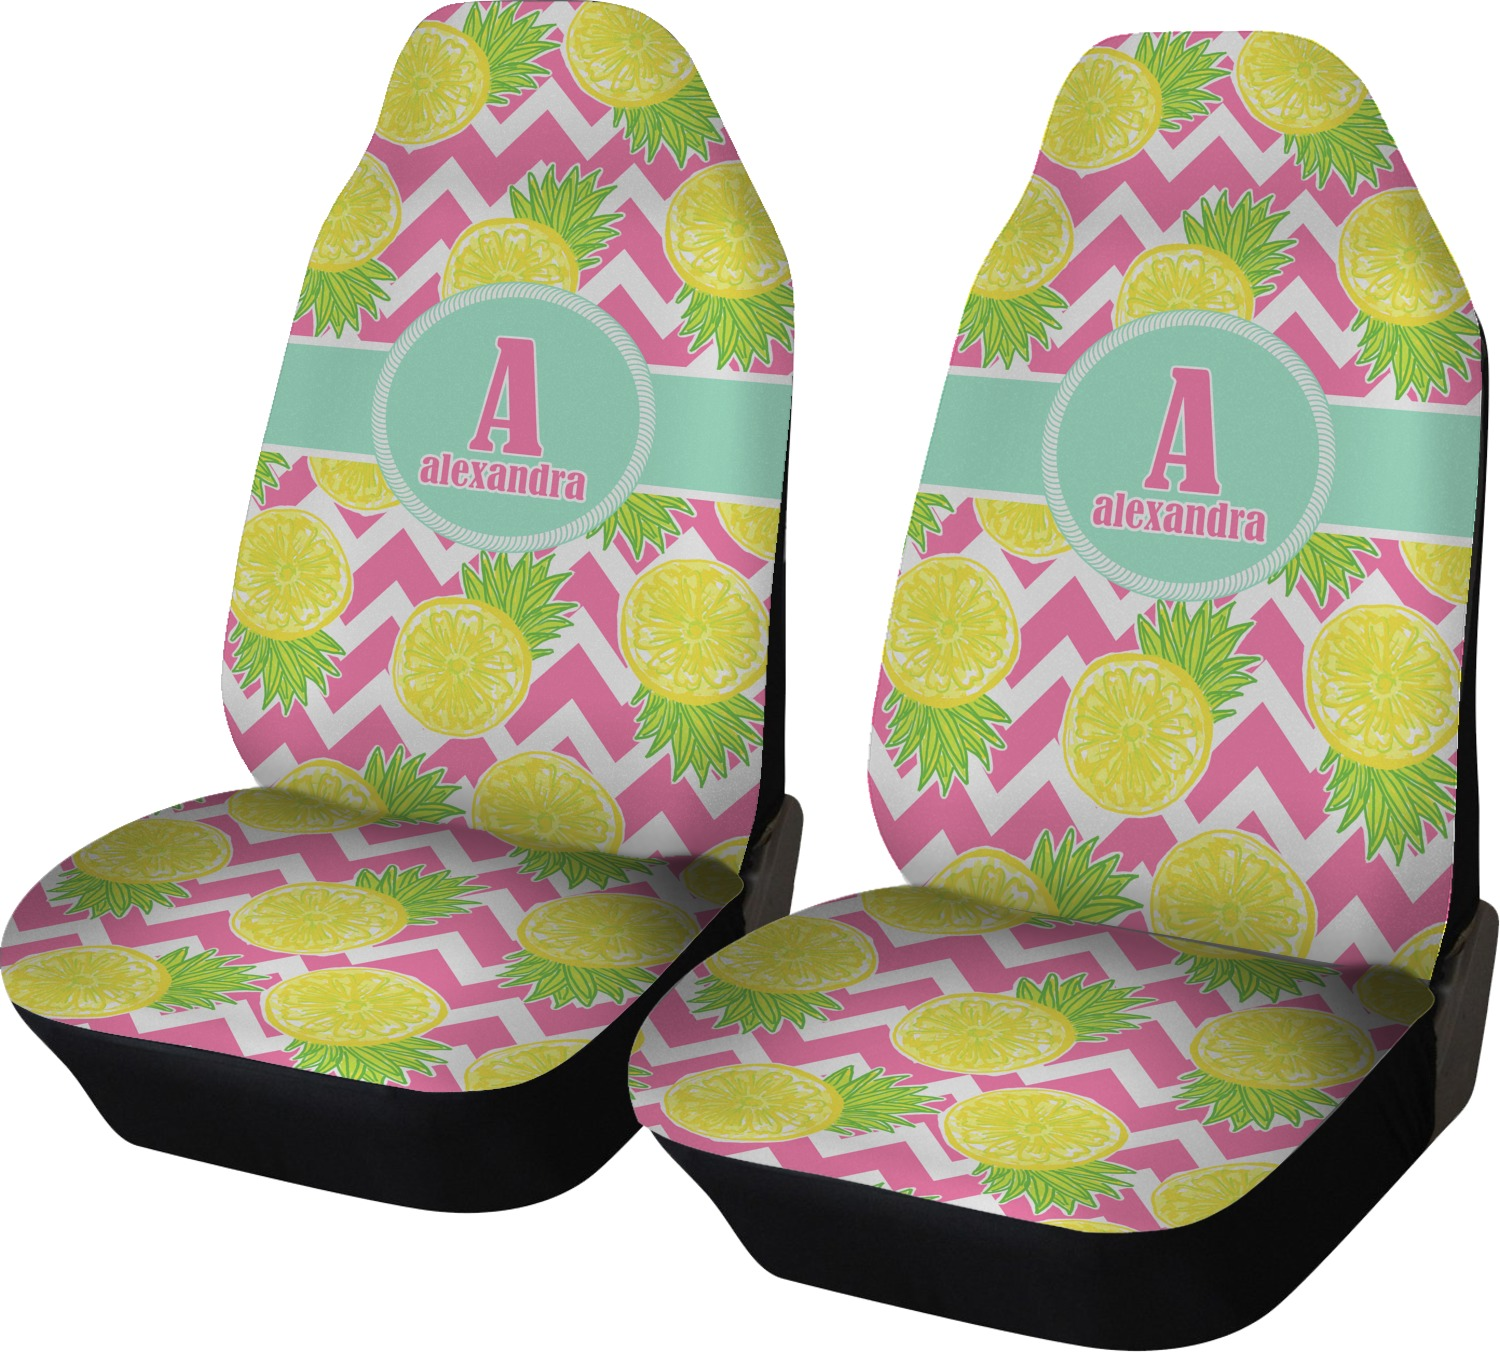 Car Seat Covers Designs Price